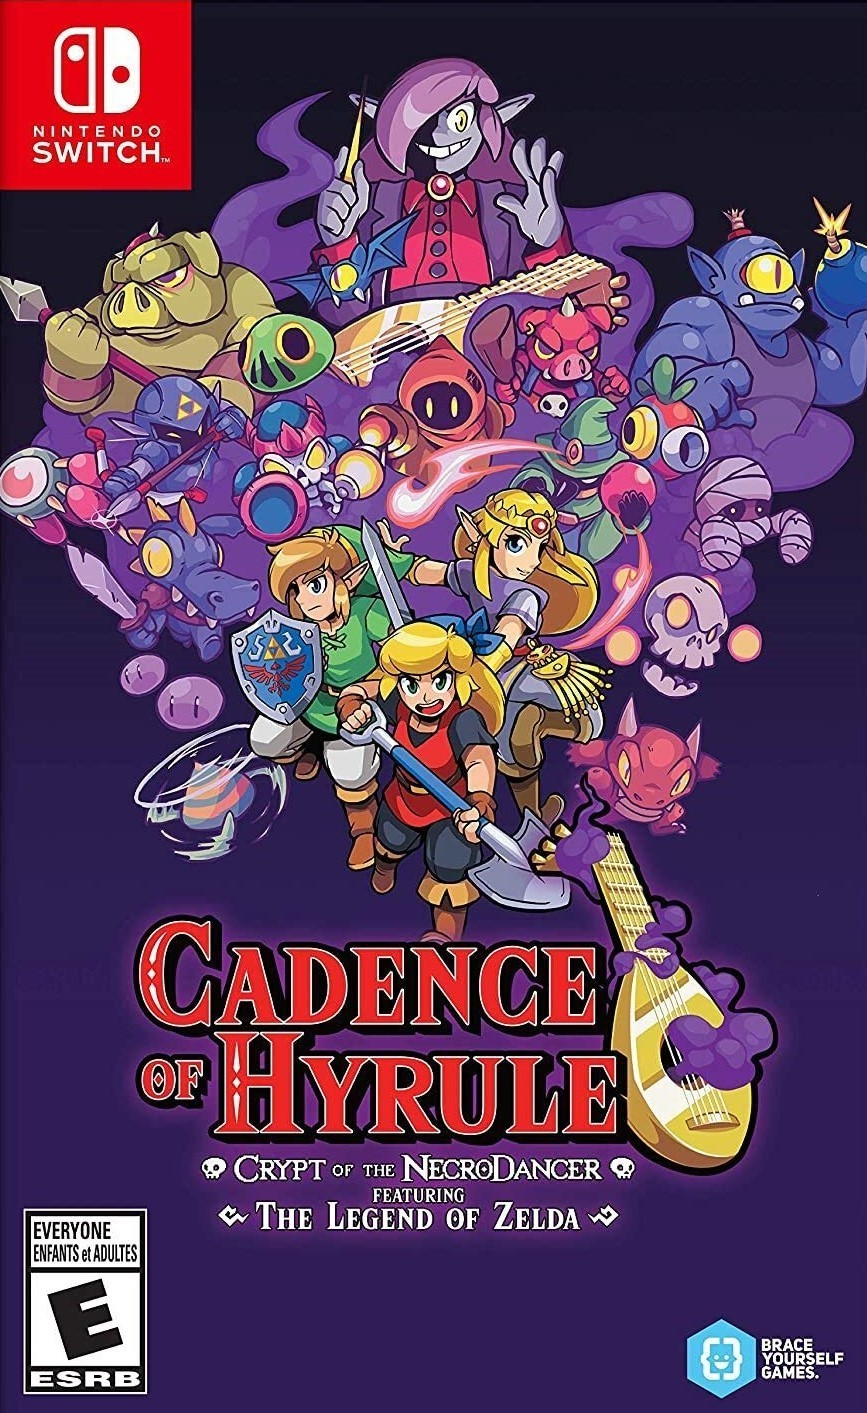 Superphillip Central Cadence Of Hyrule Crypt Of The Necrodancer Featuring The Legend Of Zelda Nsw Review